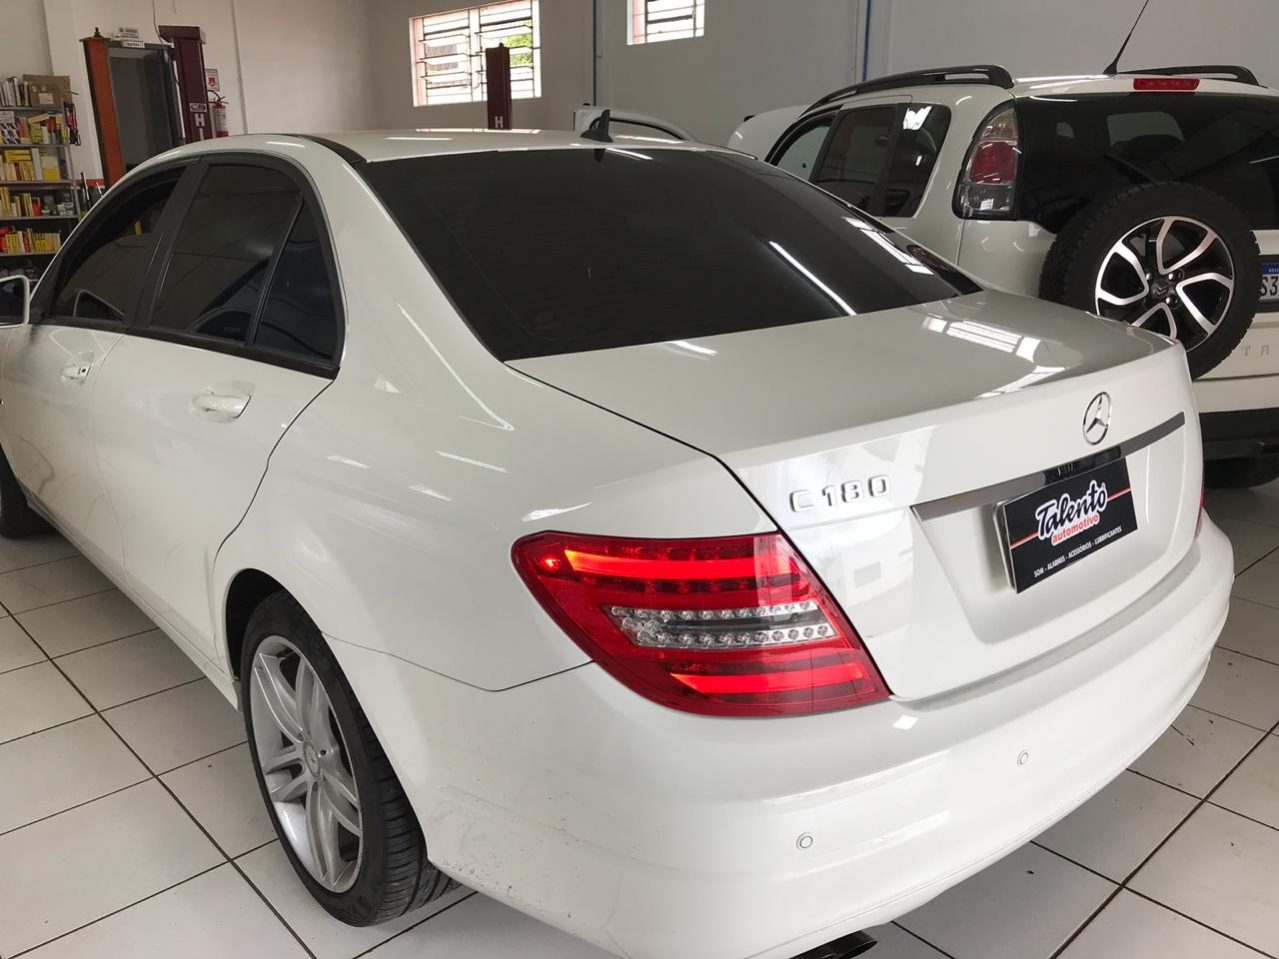 Talento-automotivo-cascavel-pr-mercedes-benz-c180-2